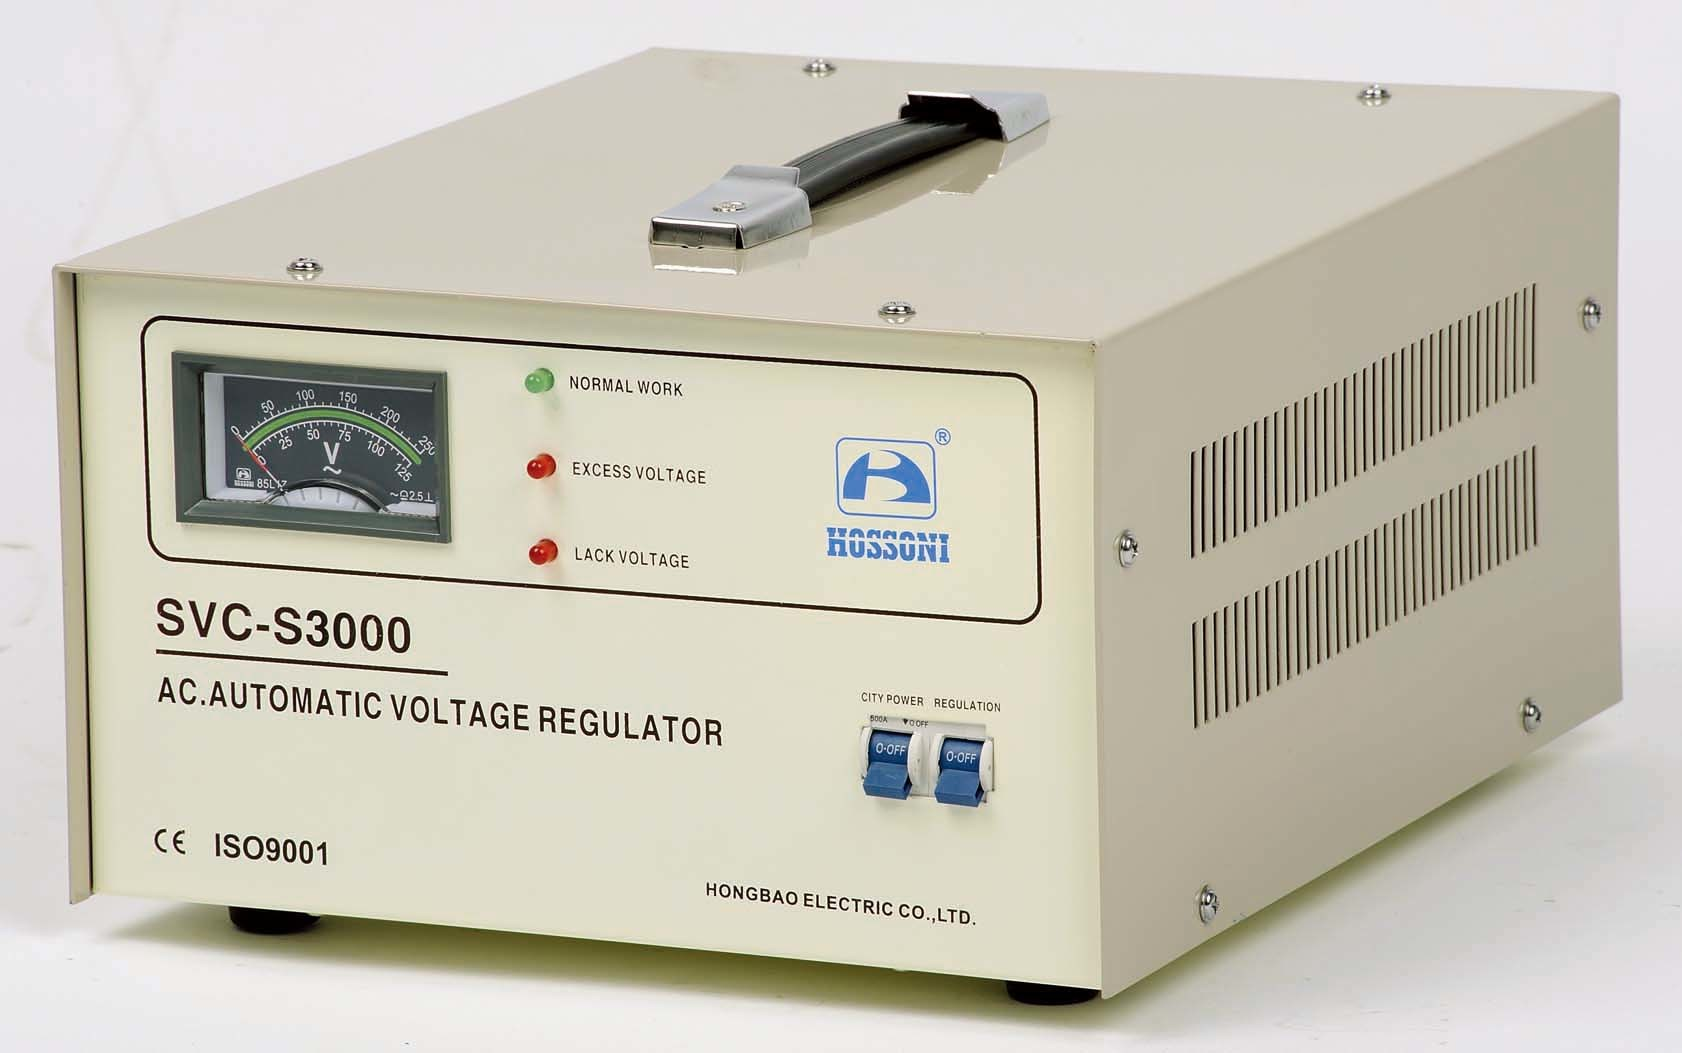 China Svc S Super Thin Type Voltage Stabilizer Avr 3k Of Automatic Control And Regulation Its Input